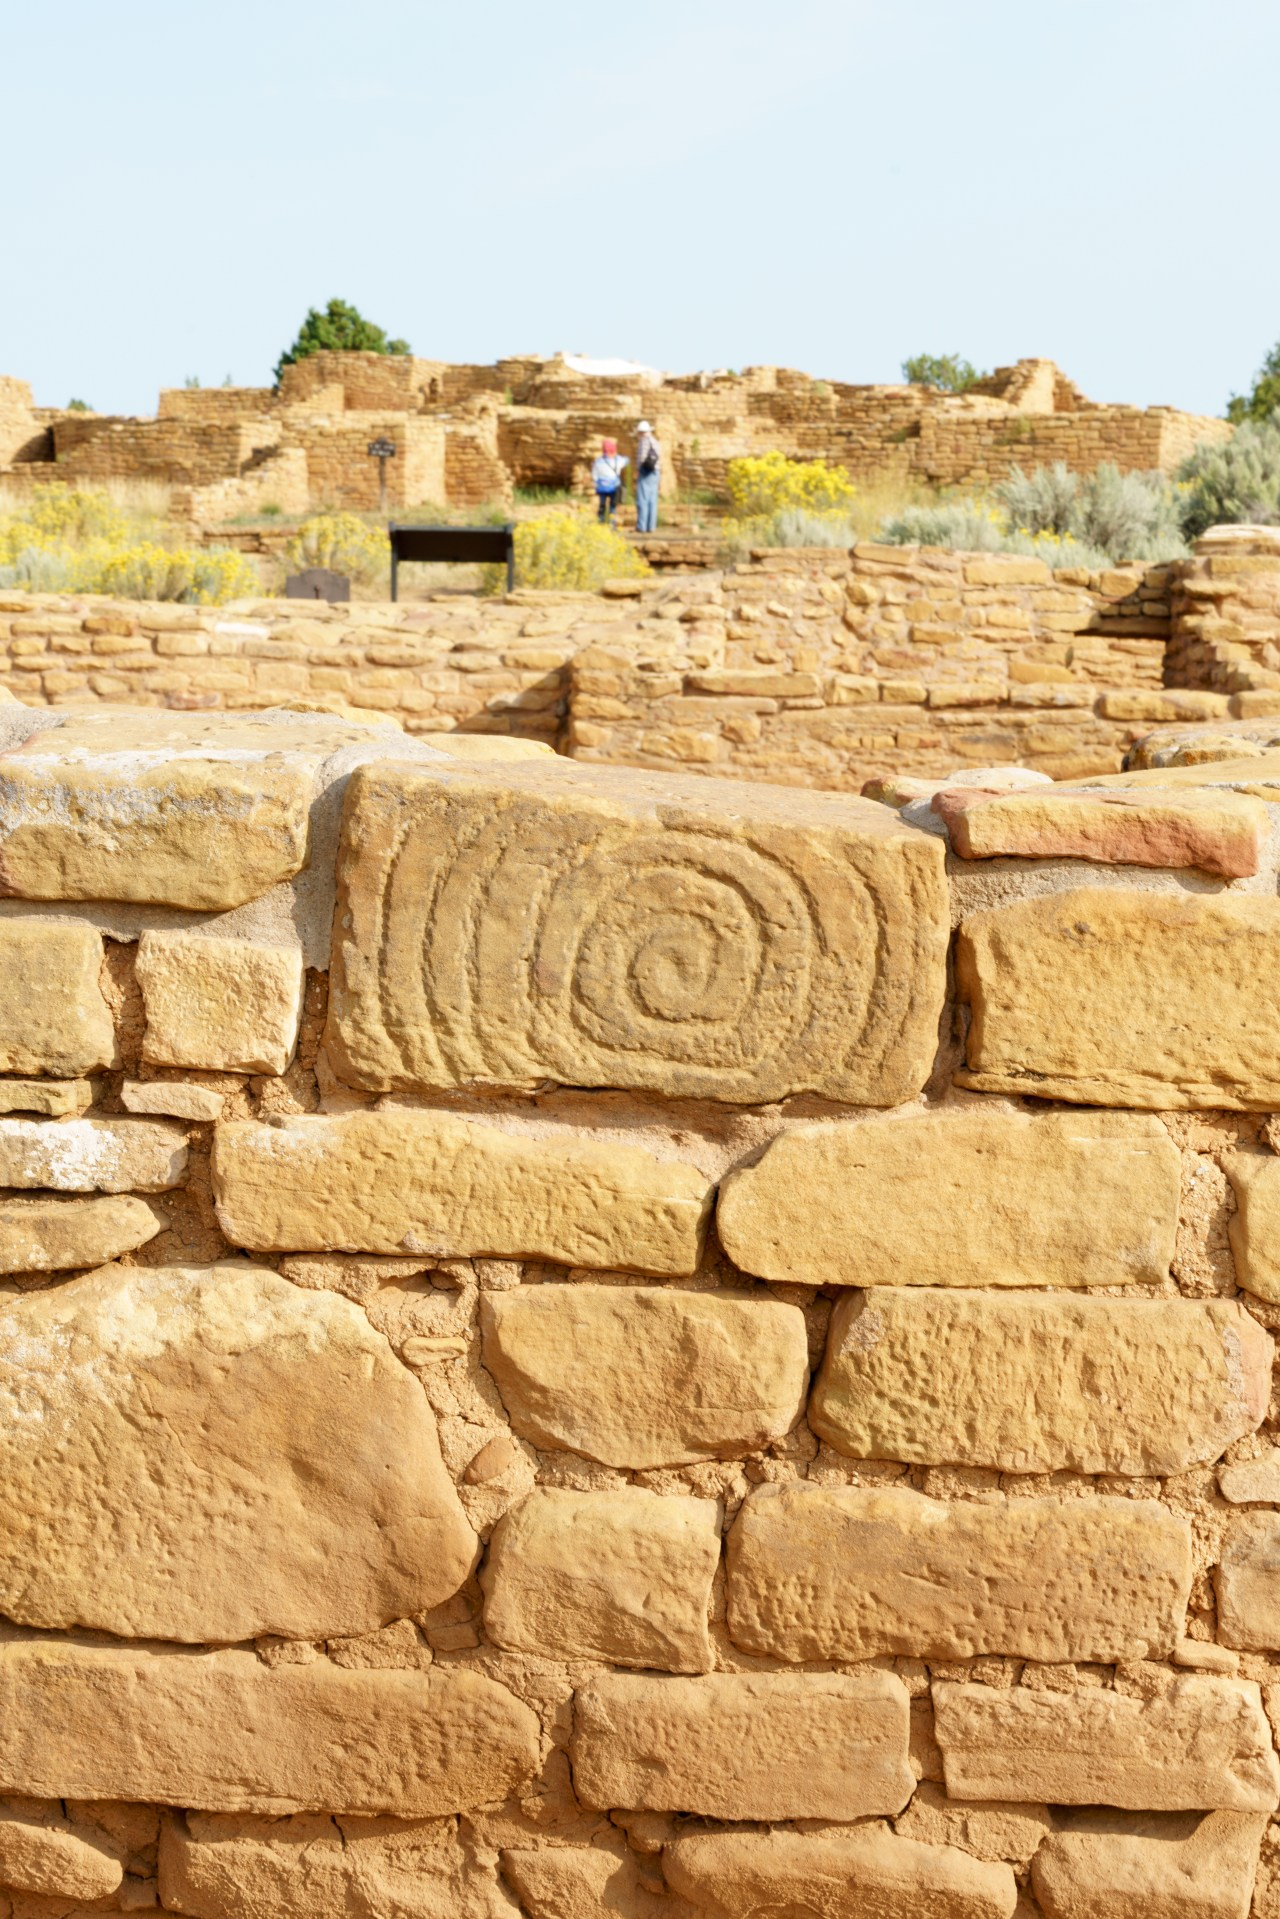 Close up of art work on a brick in Mesa Verde building